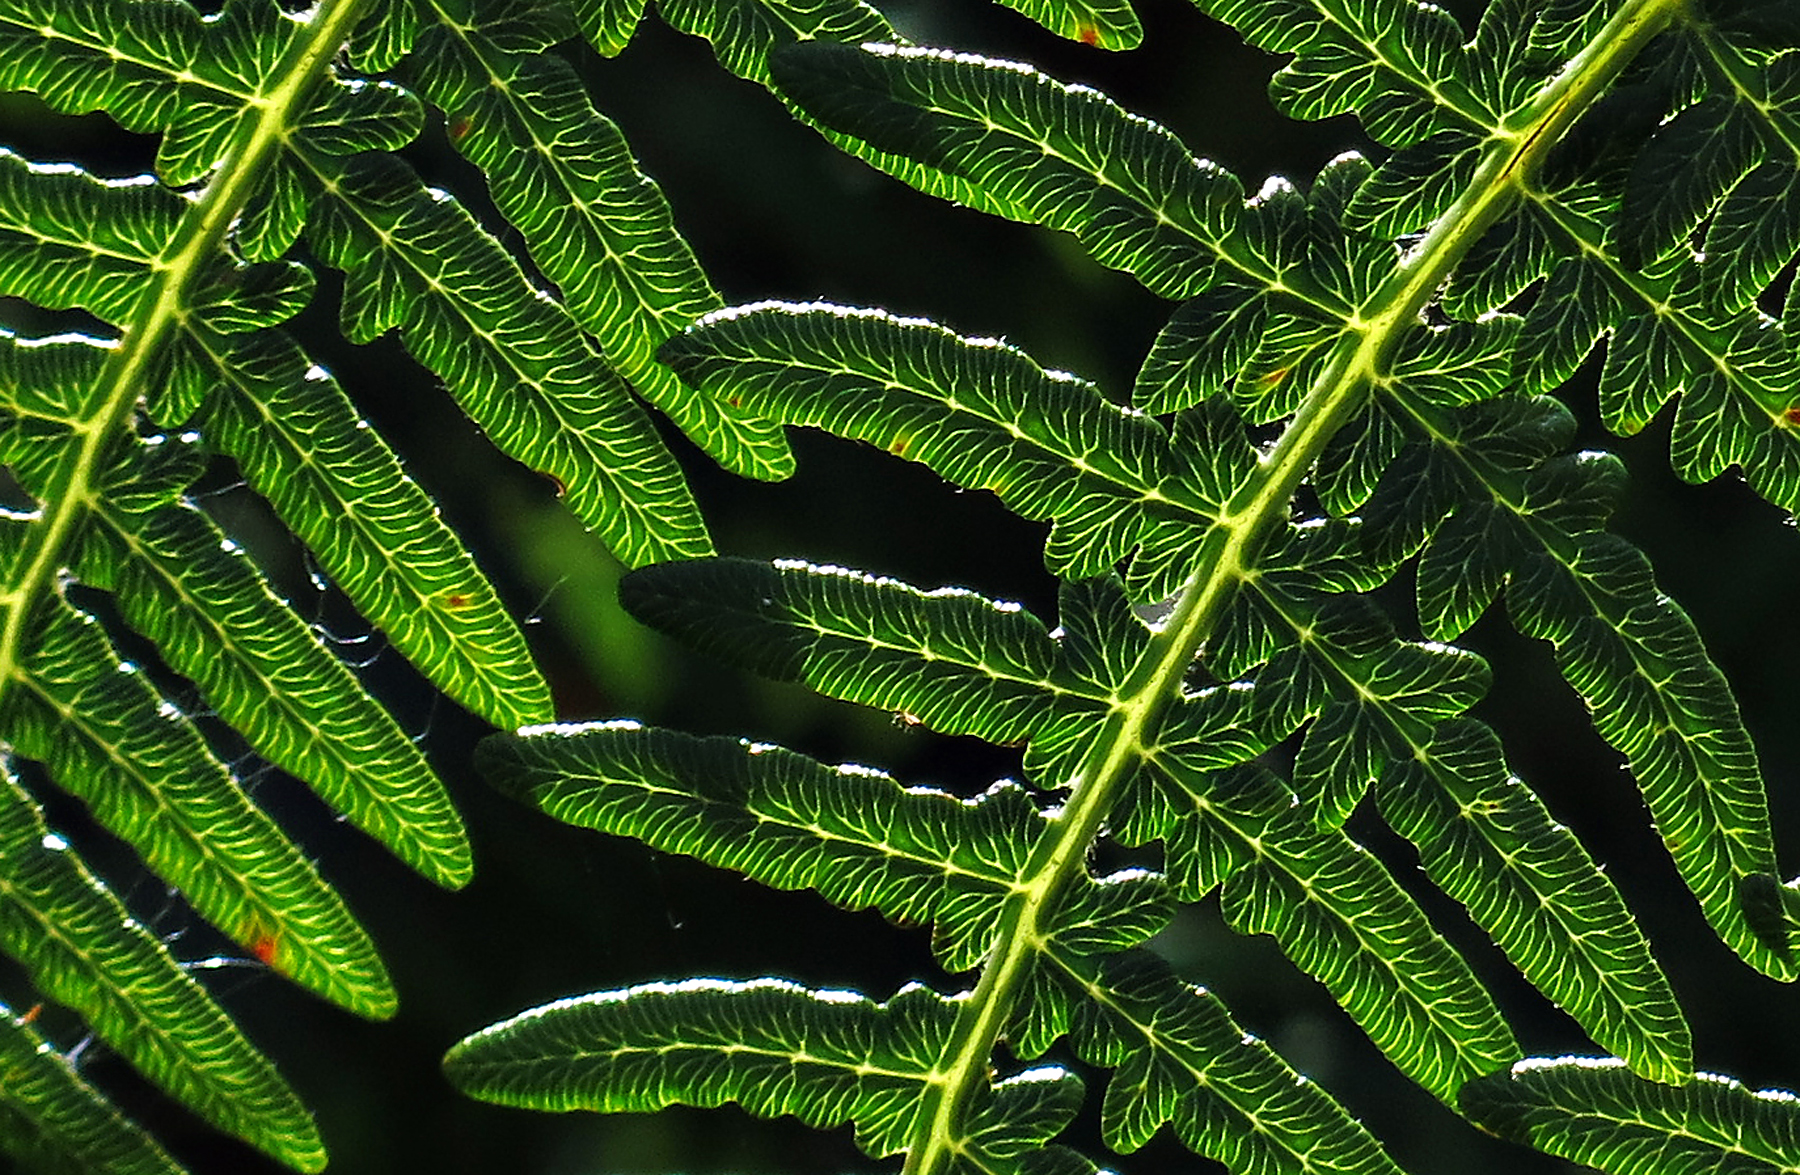 Fern leaf patterns